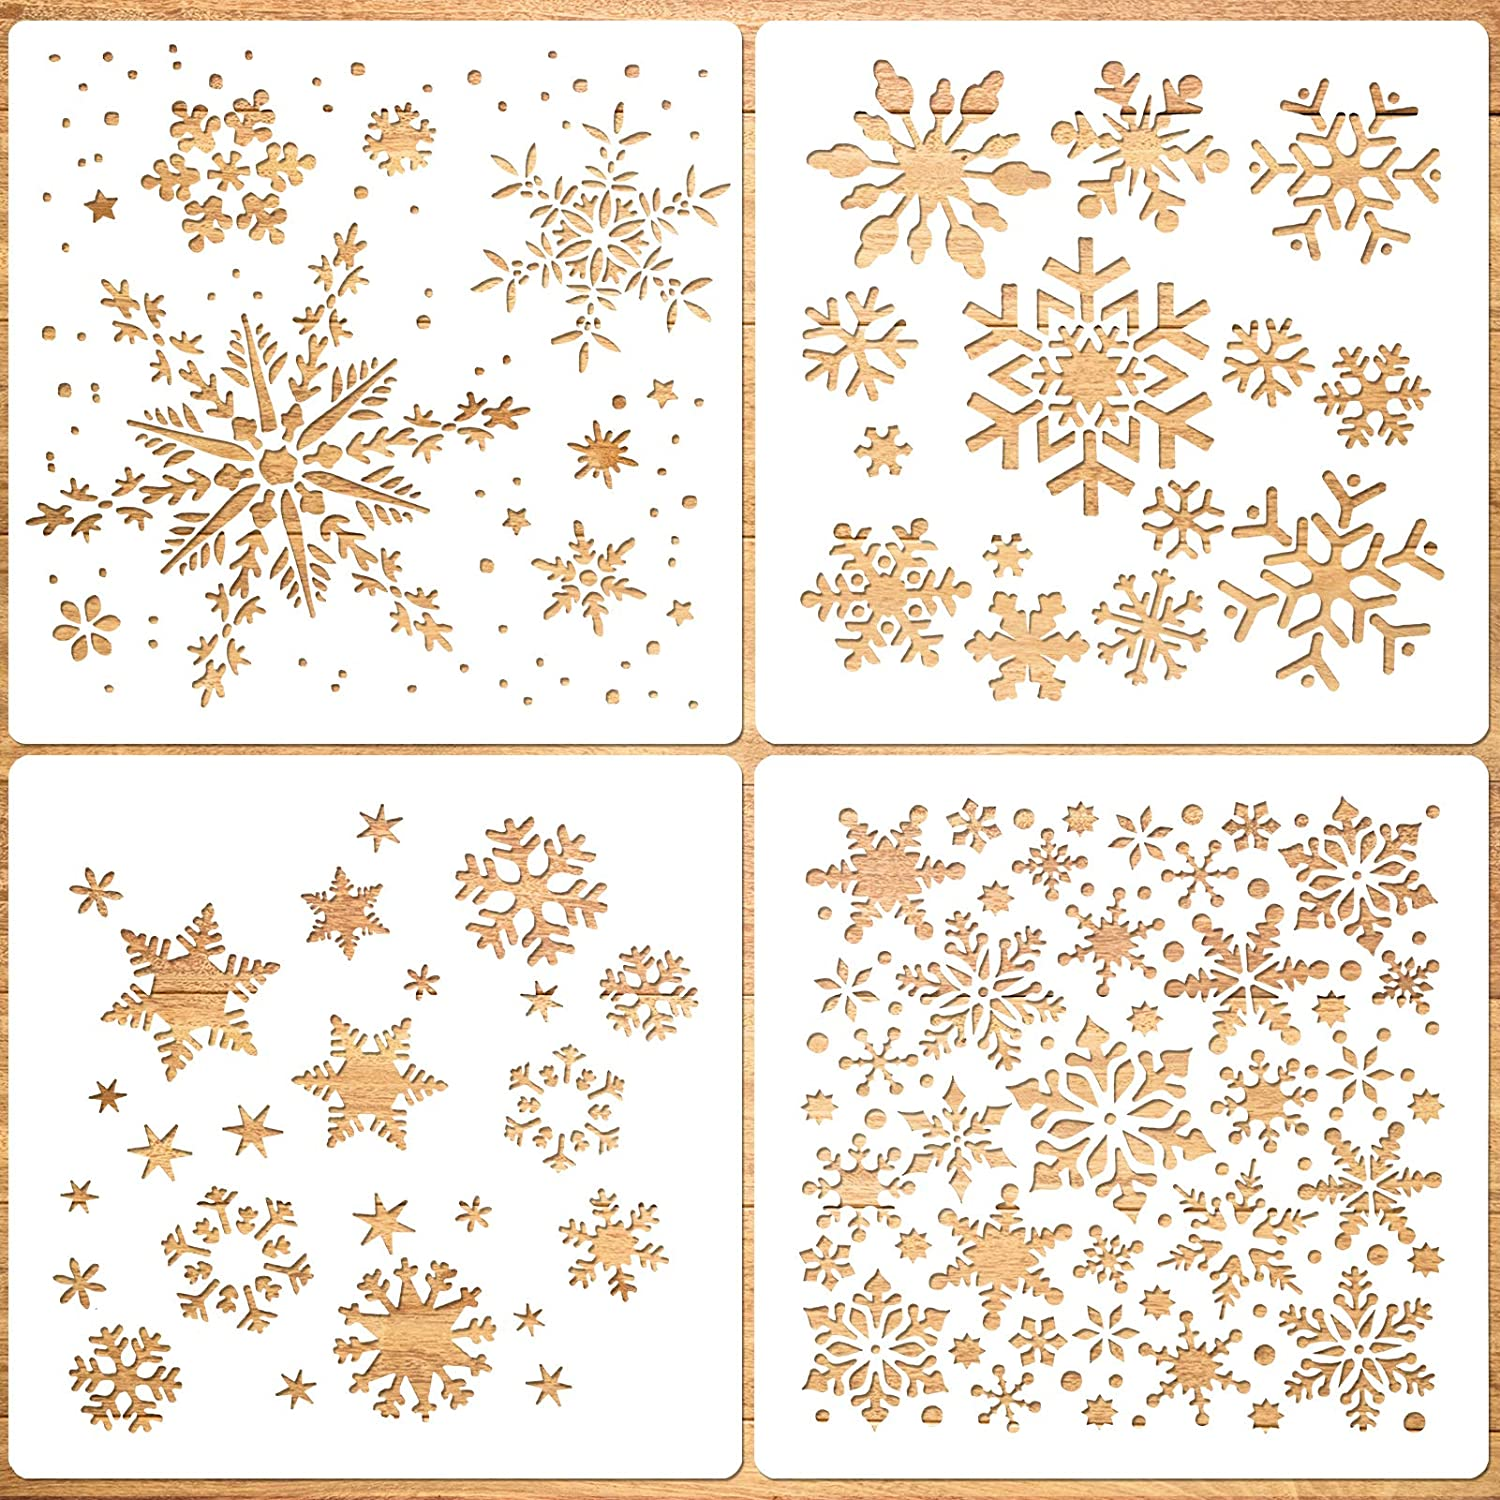 Konsait Large Christmas Snowflake Stencil Template,Reusable Plastic Painting DIY Crafts Templates,Xmas Snowflake Decor for Wood Window Glass Greeting Card,Cookies, Cake,Biscuit,Dessert,Coffee Decor